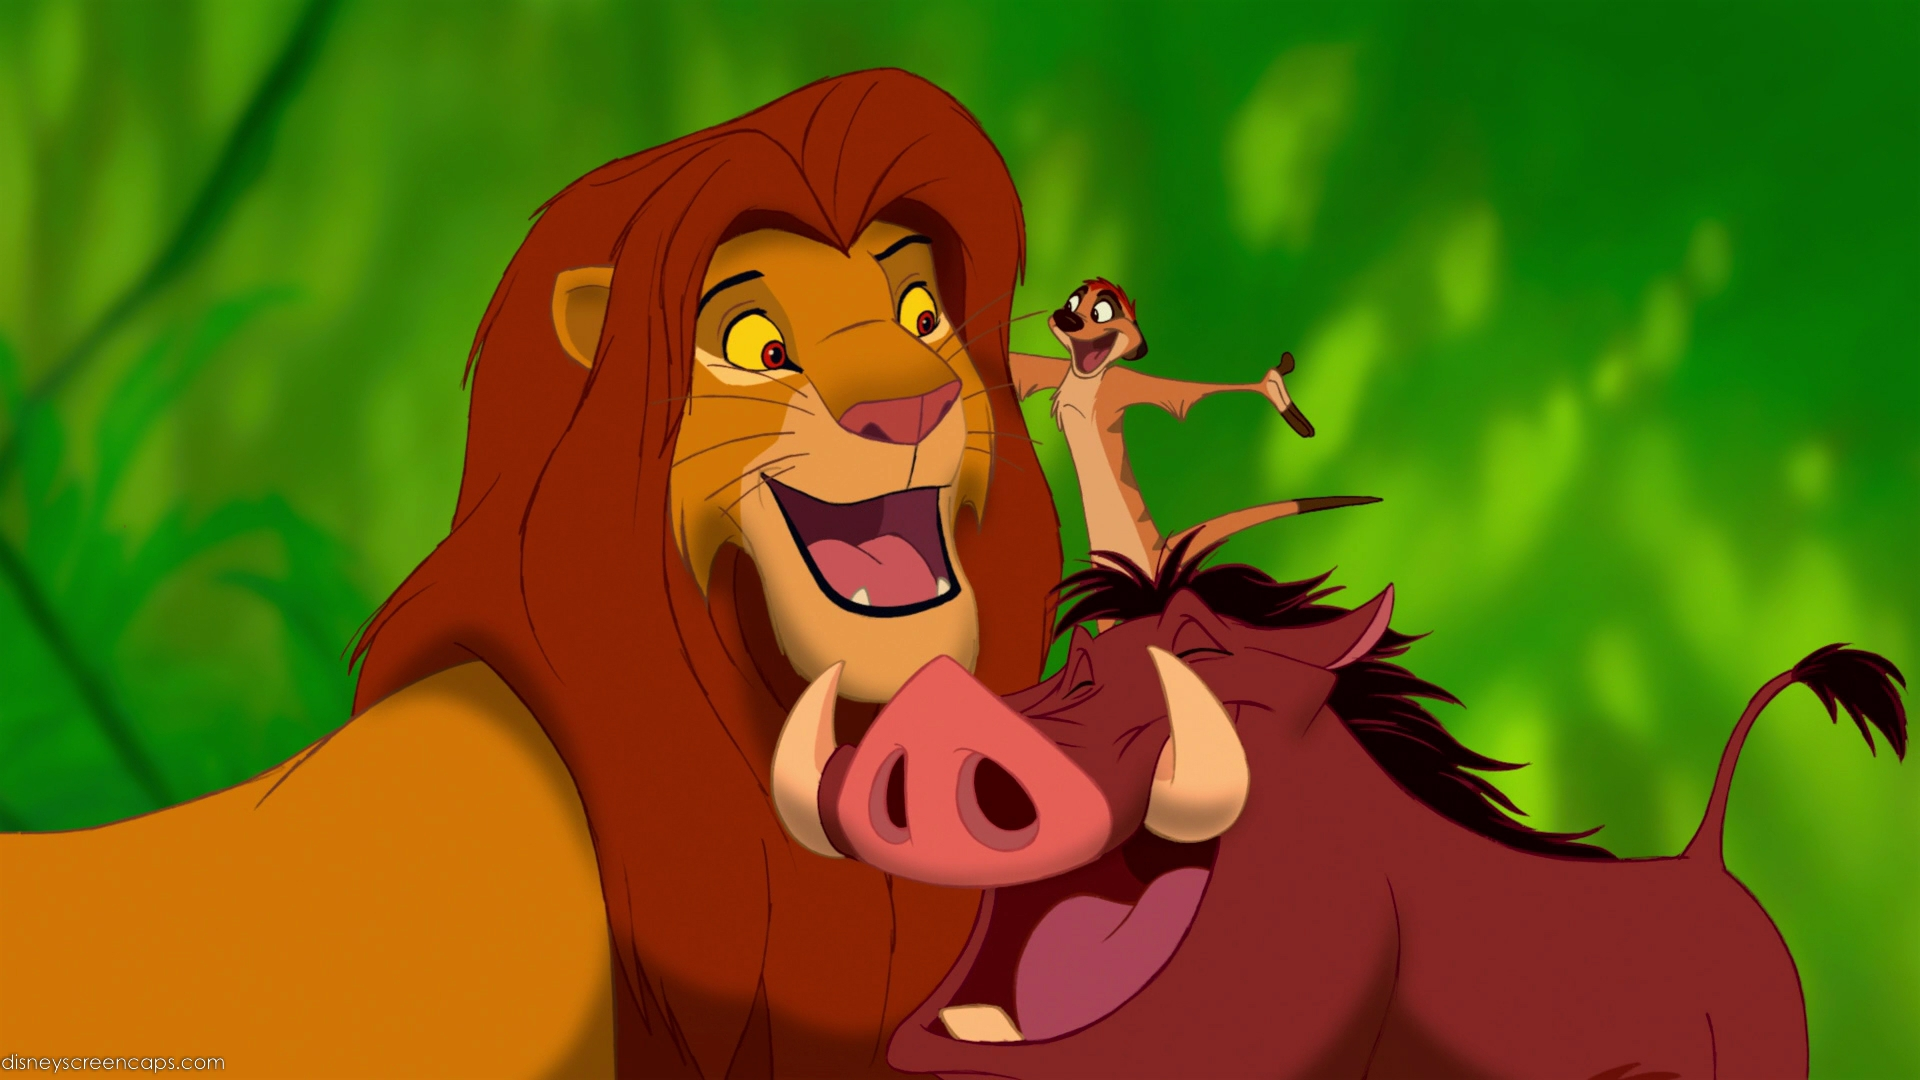 Lionking disneyscreencaps.com 5554 Top 5 Regrets People Have on Their Death Beds